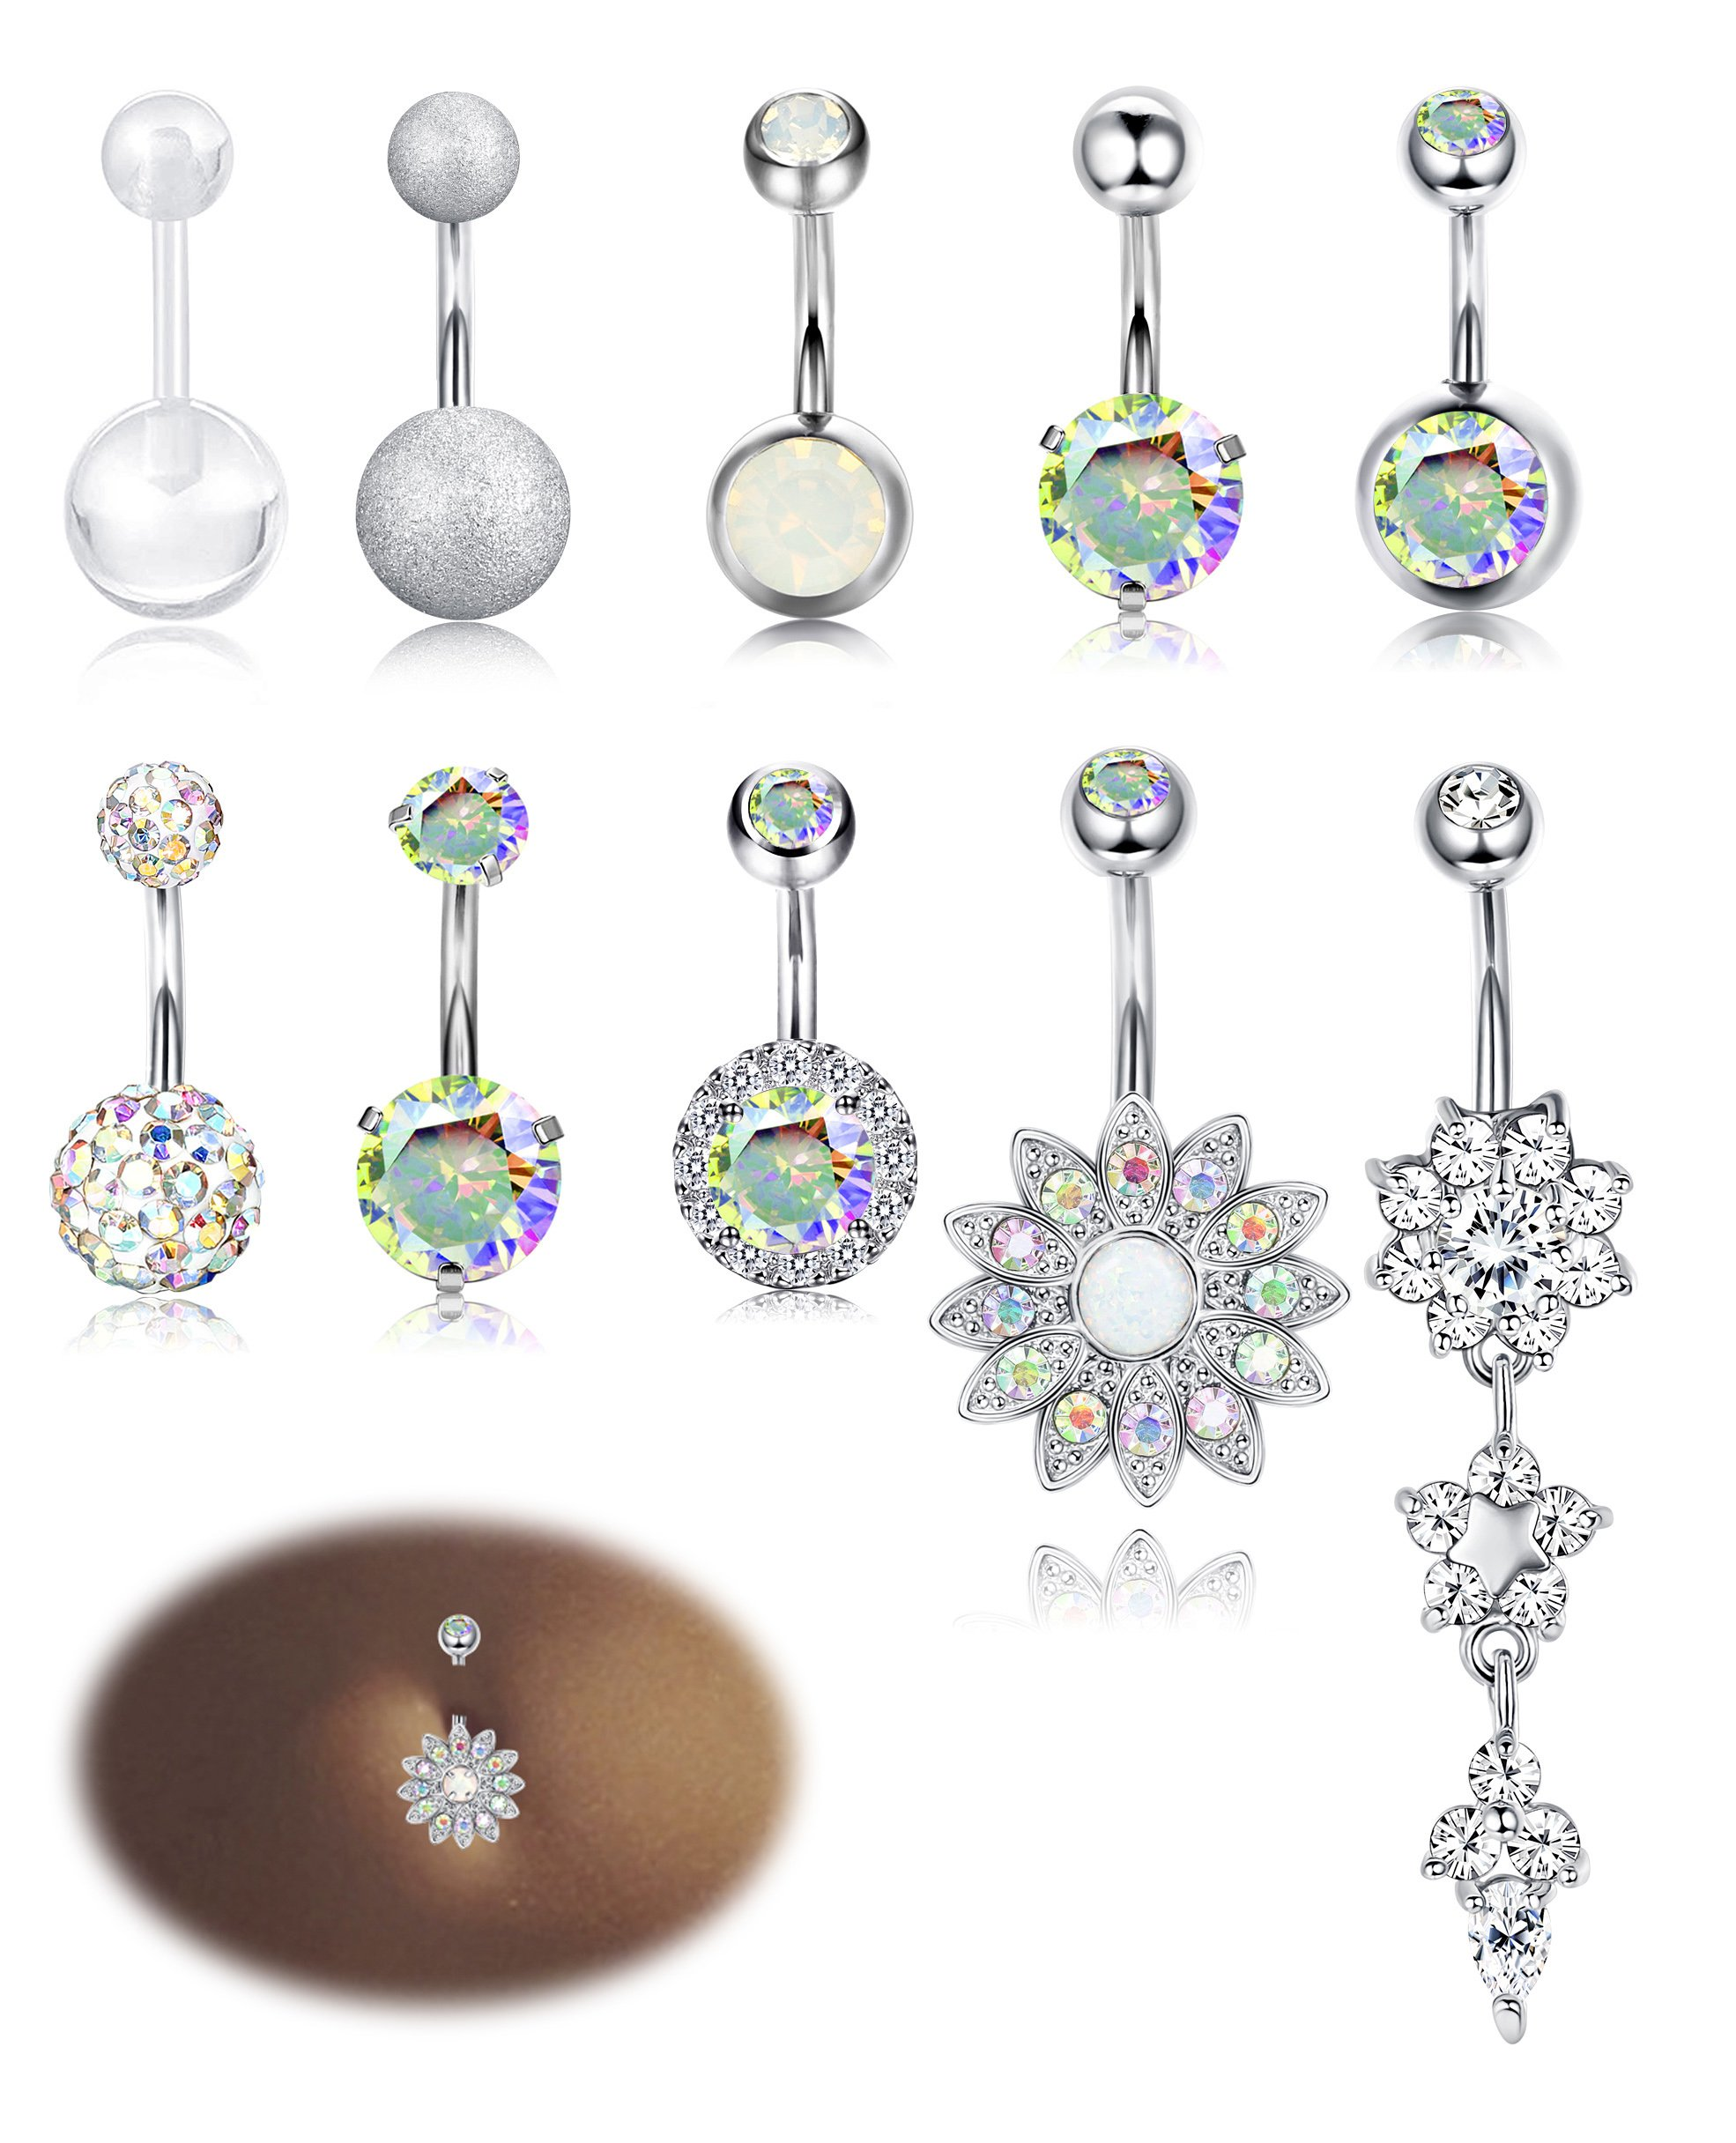 Milacolato 10PCS Stainless Steel Belly Button Rings for Womens Girls Navel Rings Barbell Dangle Acrylic CZ Body Piercing Jewelry AB